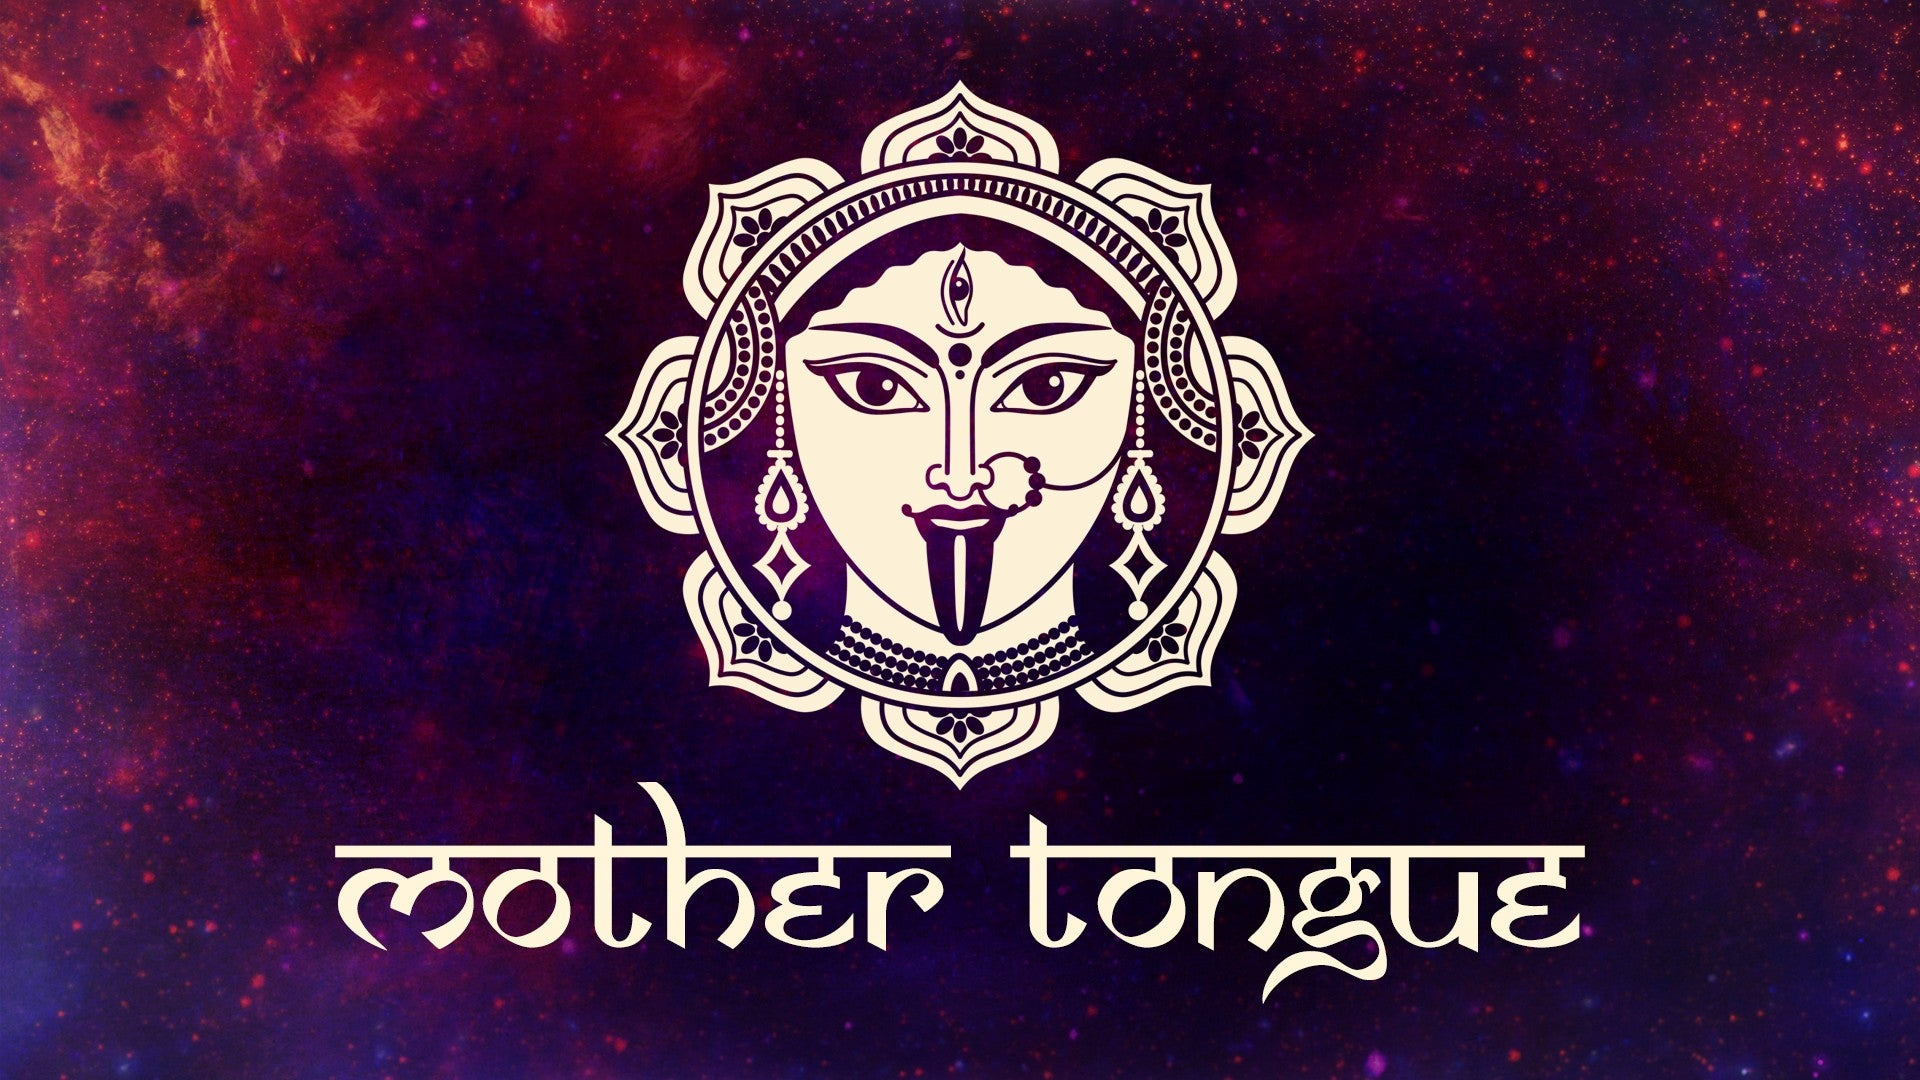 Mother Tongue Artwork